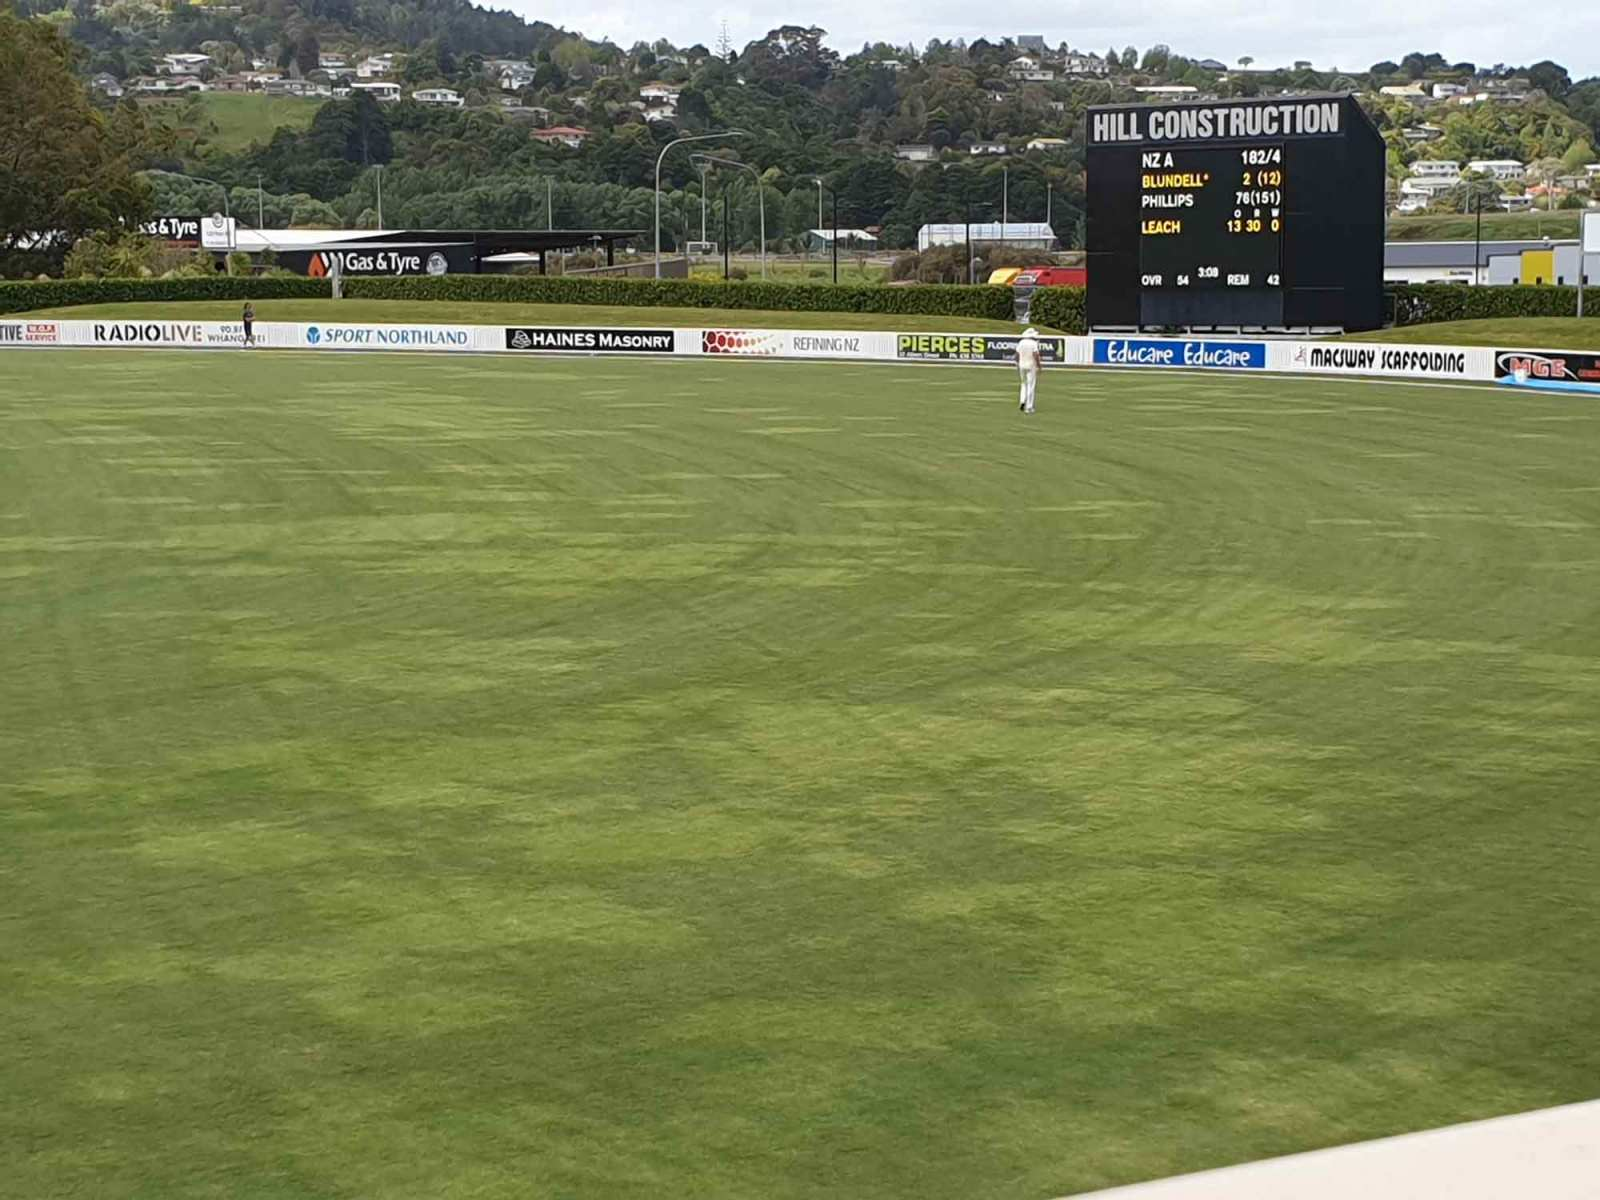 Hill Construction Scoreboard at Cobham Oval Whangarei